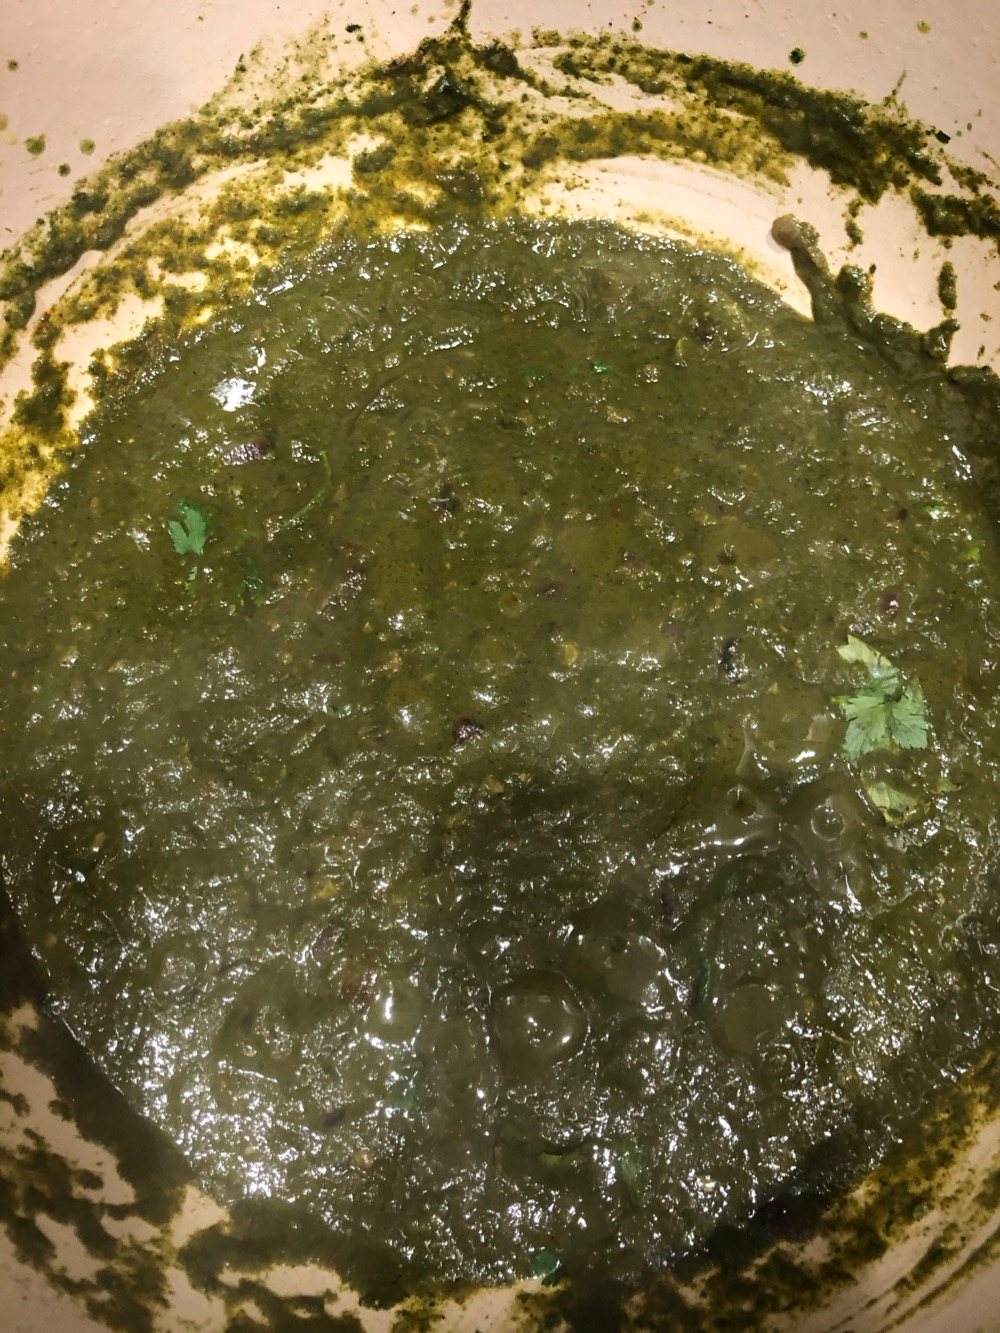 The spinach puree has been added to the sauce.